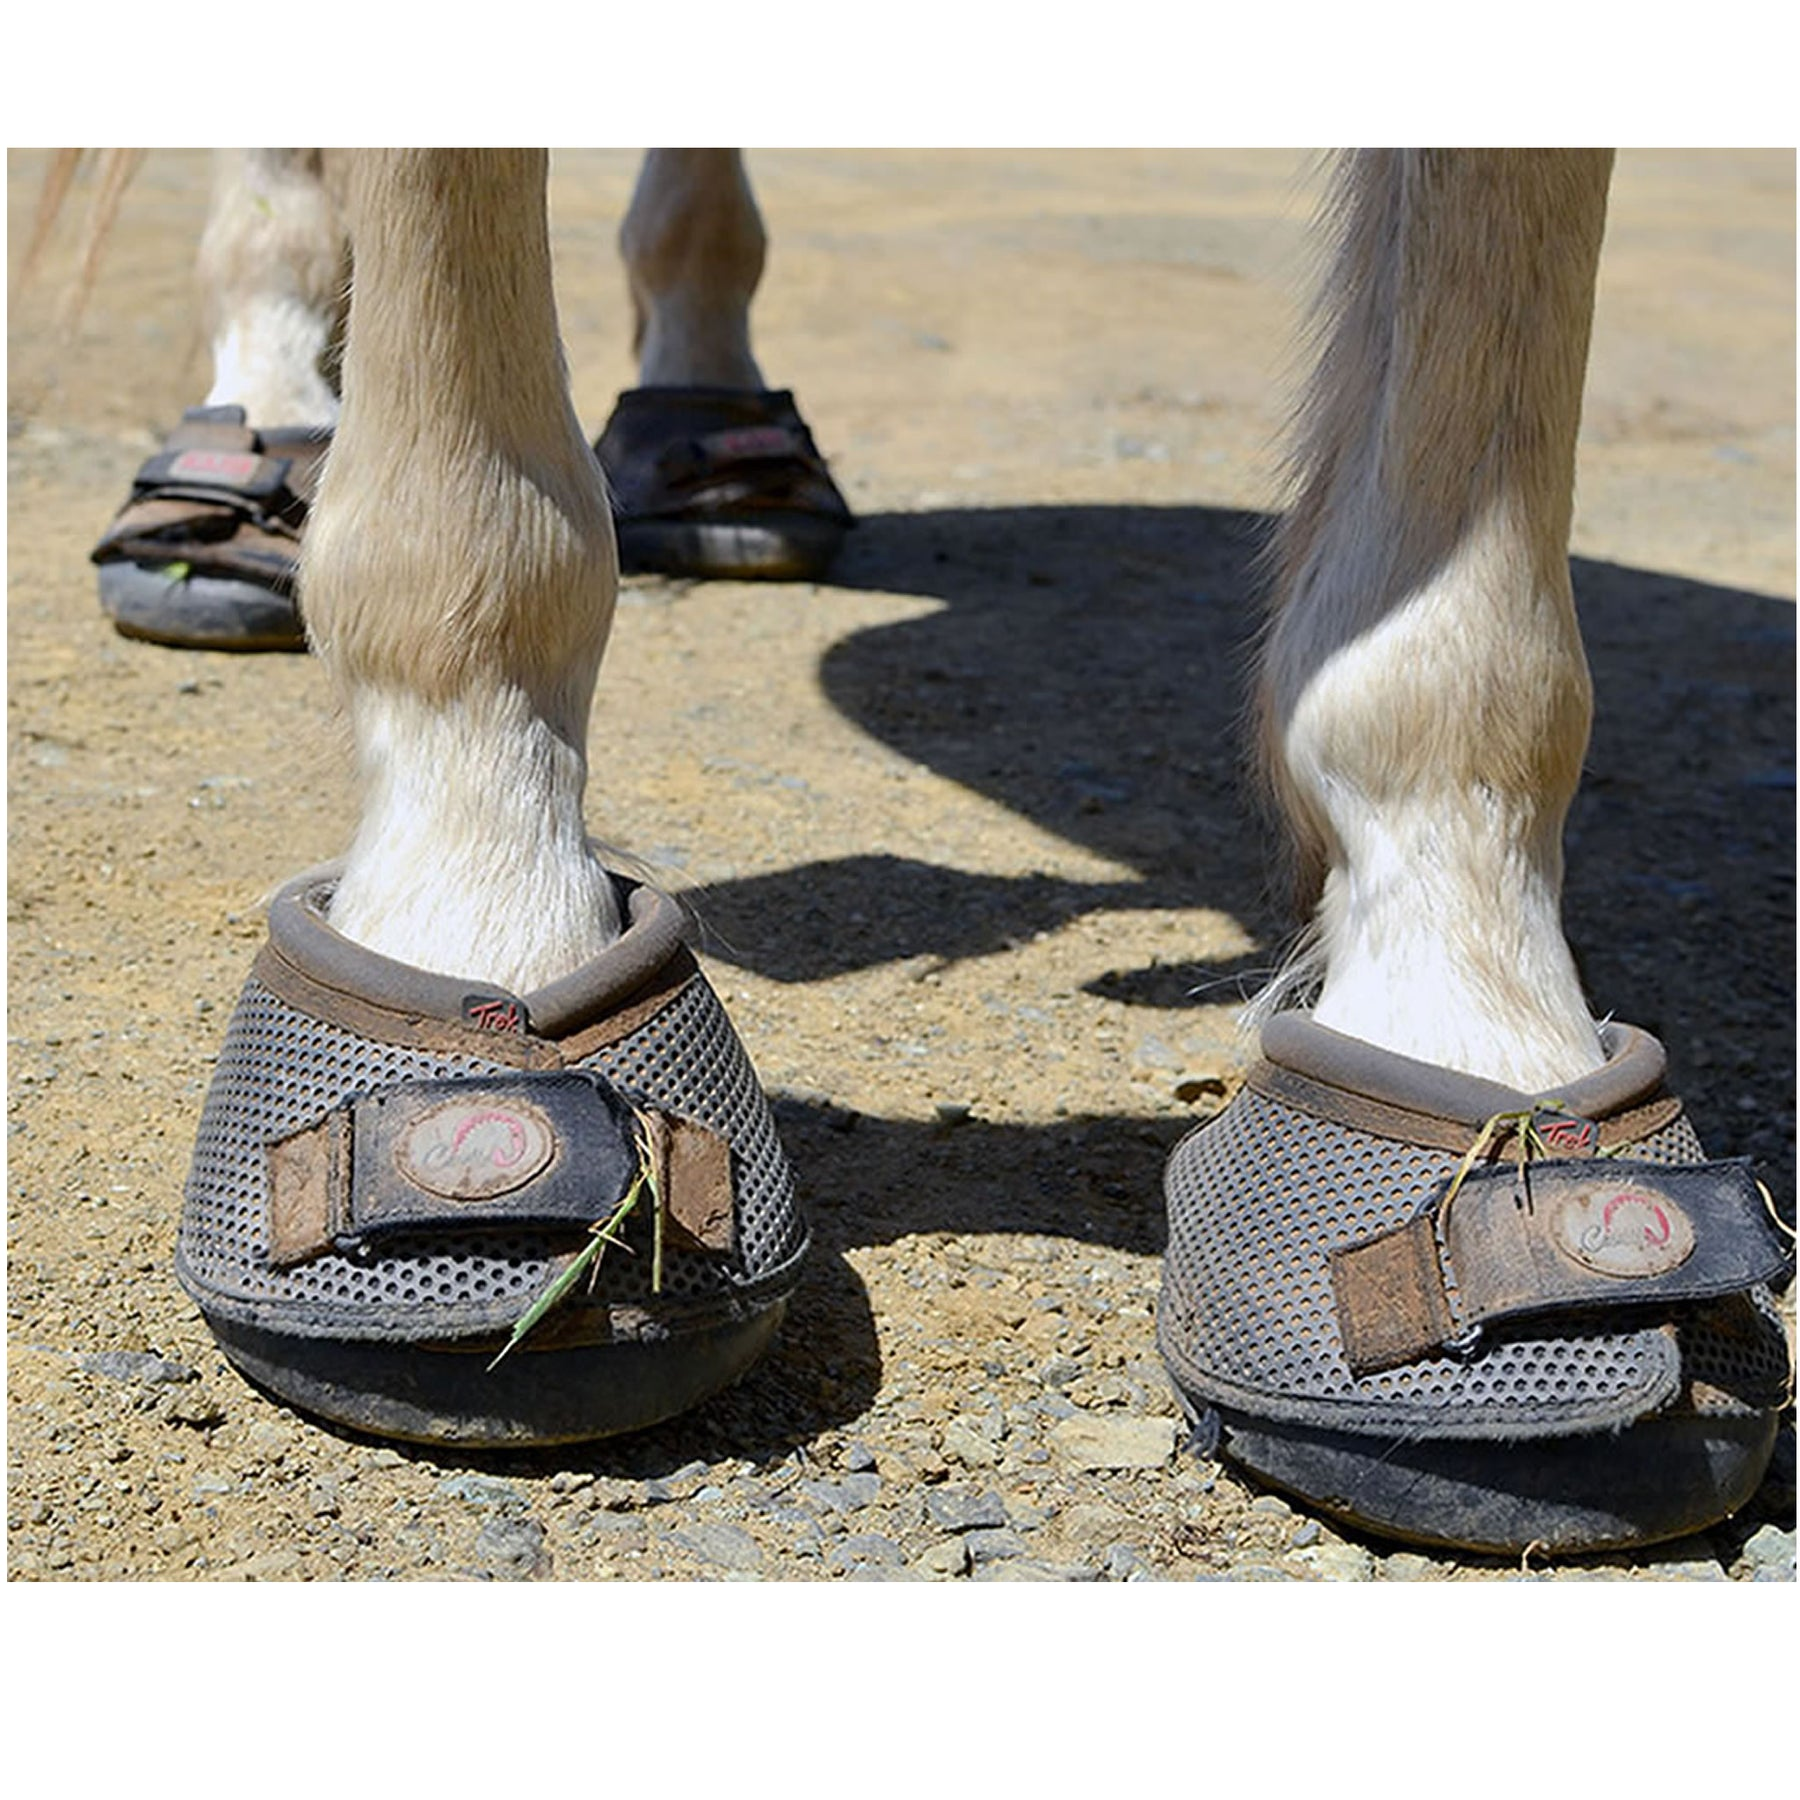 Ice Grip Hoof Boots for my Horse - ICEGRIPPER CUSTOMER STORY